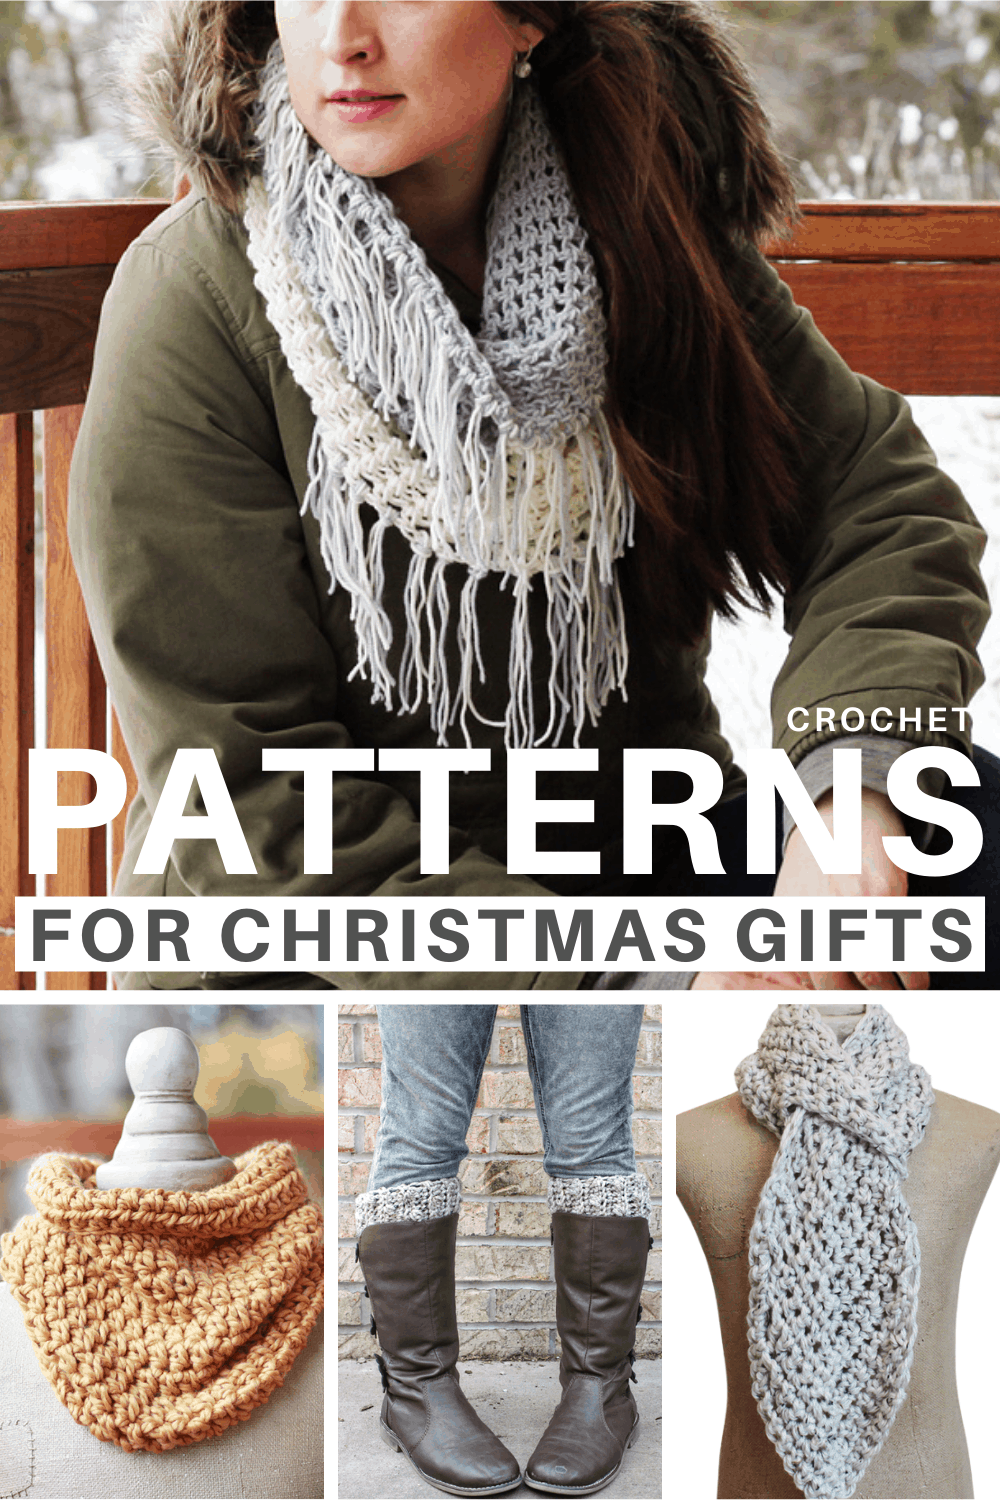 Crochet Pattern for Christmas Gifts